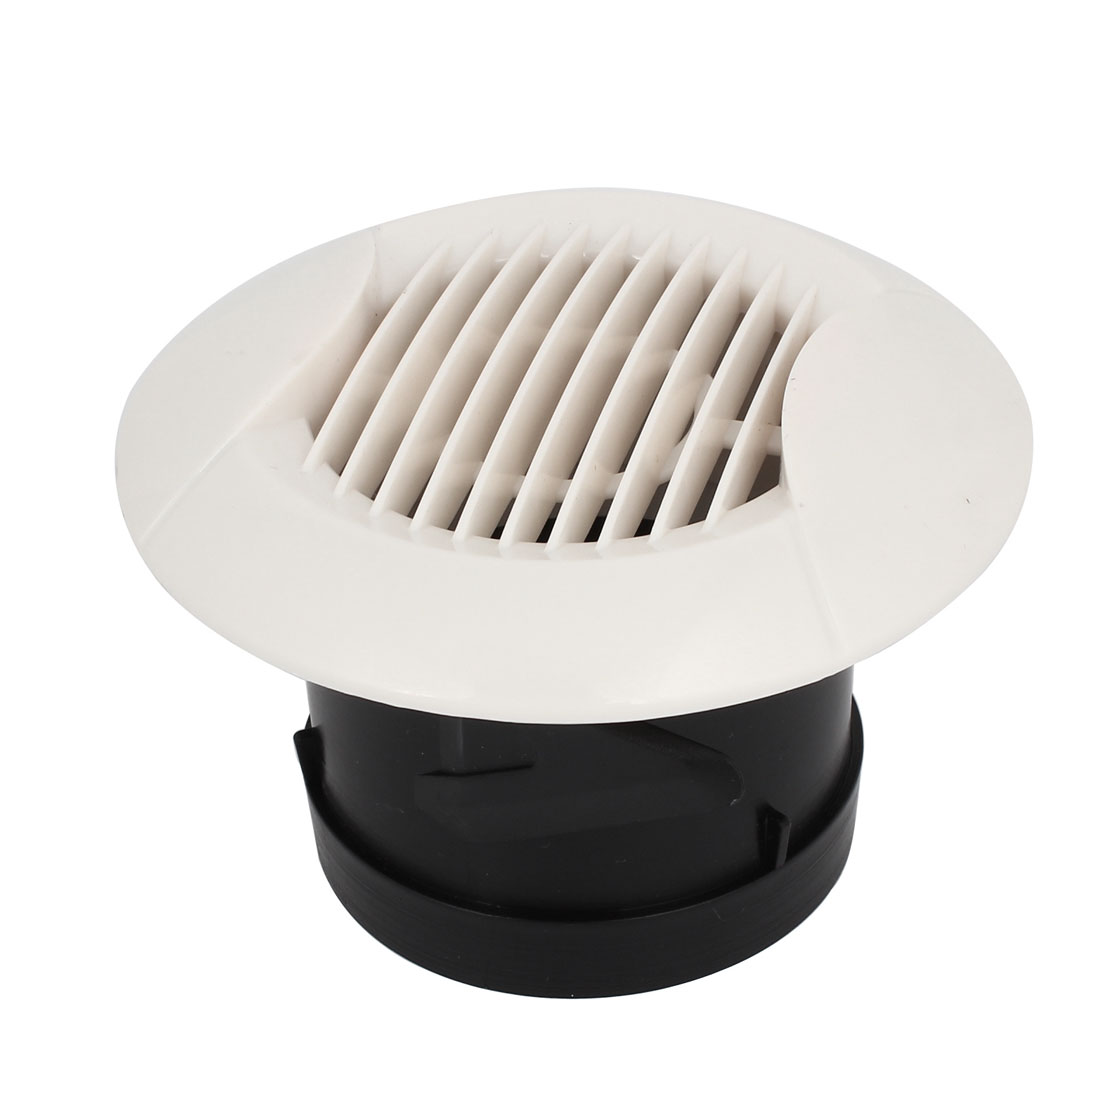 Black White Plastic Straight 75mm Outer Dia Bottom Air Grilles Diffusers Vent Valve for Bathroom Kitchen